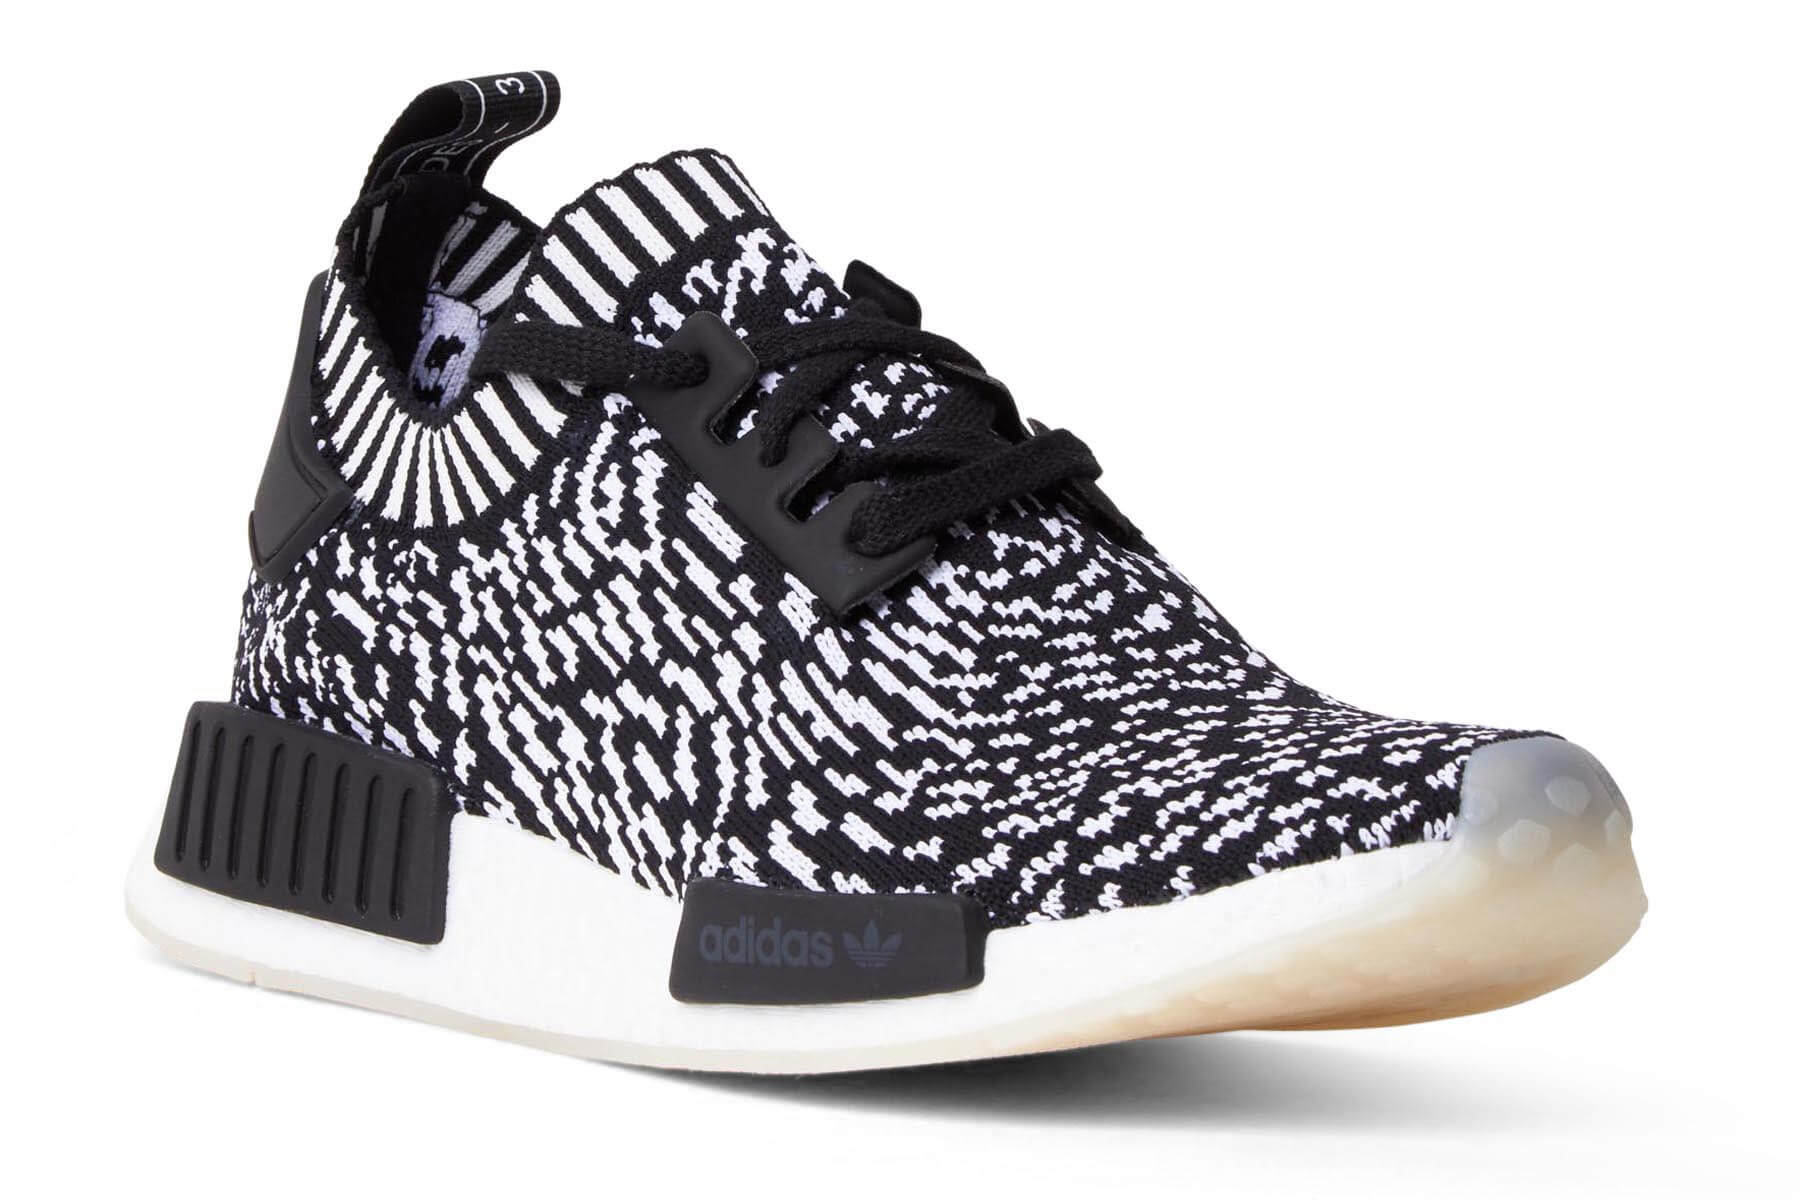 adidas NMD R1 Primeknit Sashiko Pack BY3013 Core Black   Core Black   Running  White 7c8be9831